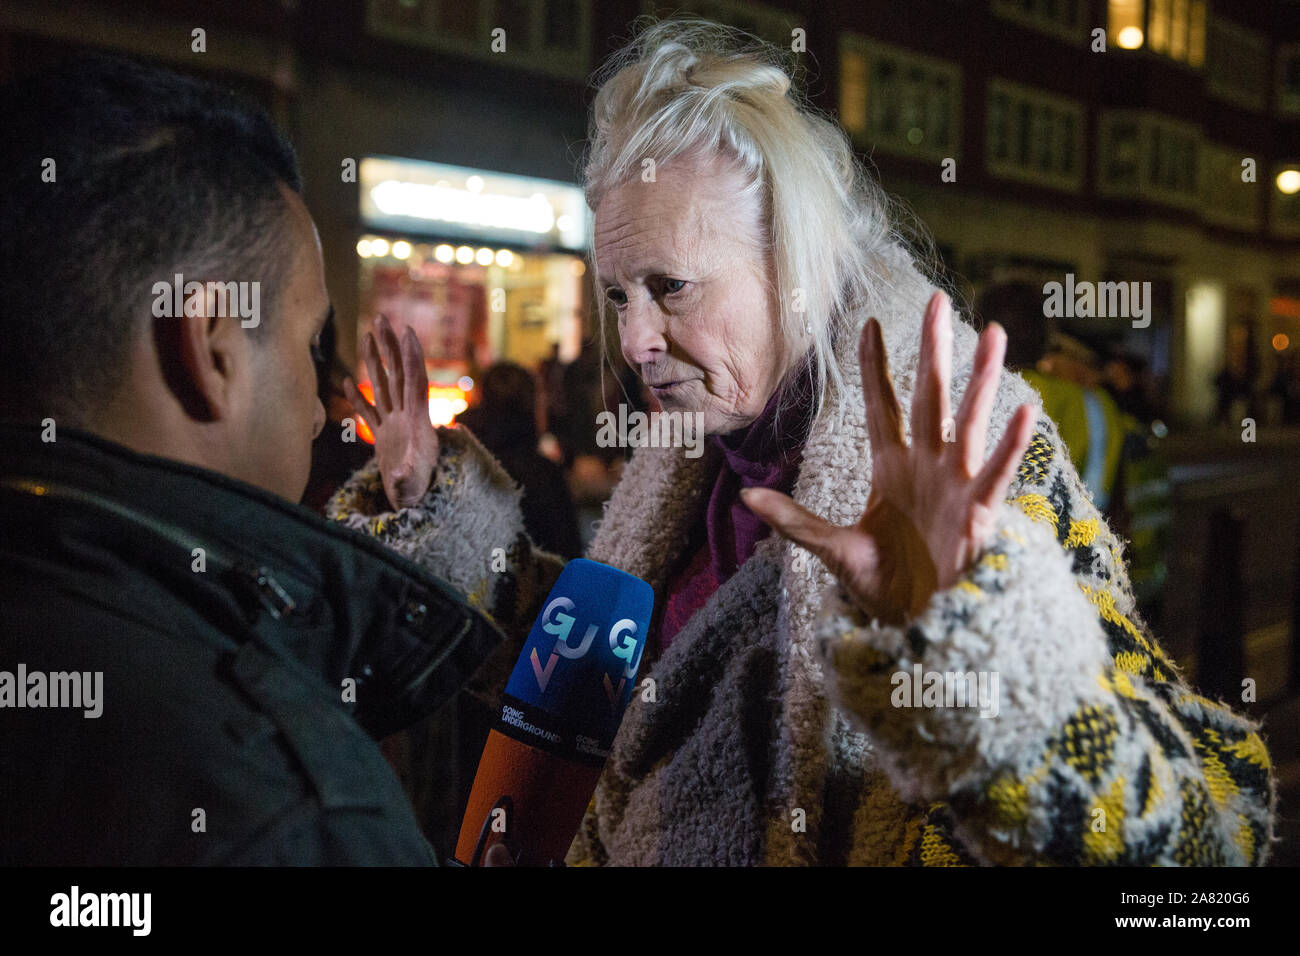 London Uk 5 November 2019 Fashion Designer Vivienne Westwood Speaks In Support Of Wikileaks Whistleblower Julian Assange Before A Protest By The Don T Extradite Assange Campaign Outside The Home Office Against His